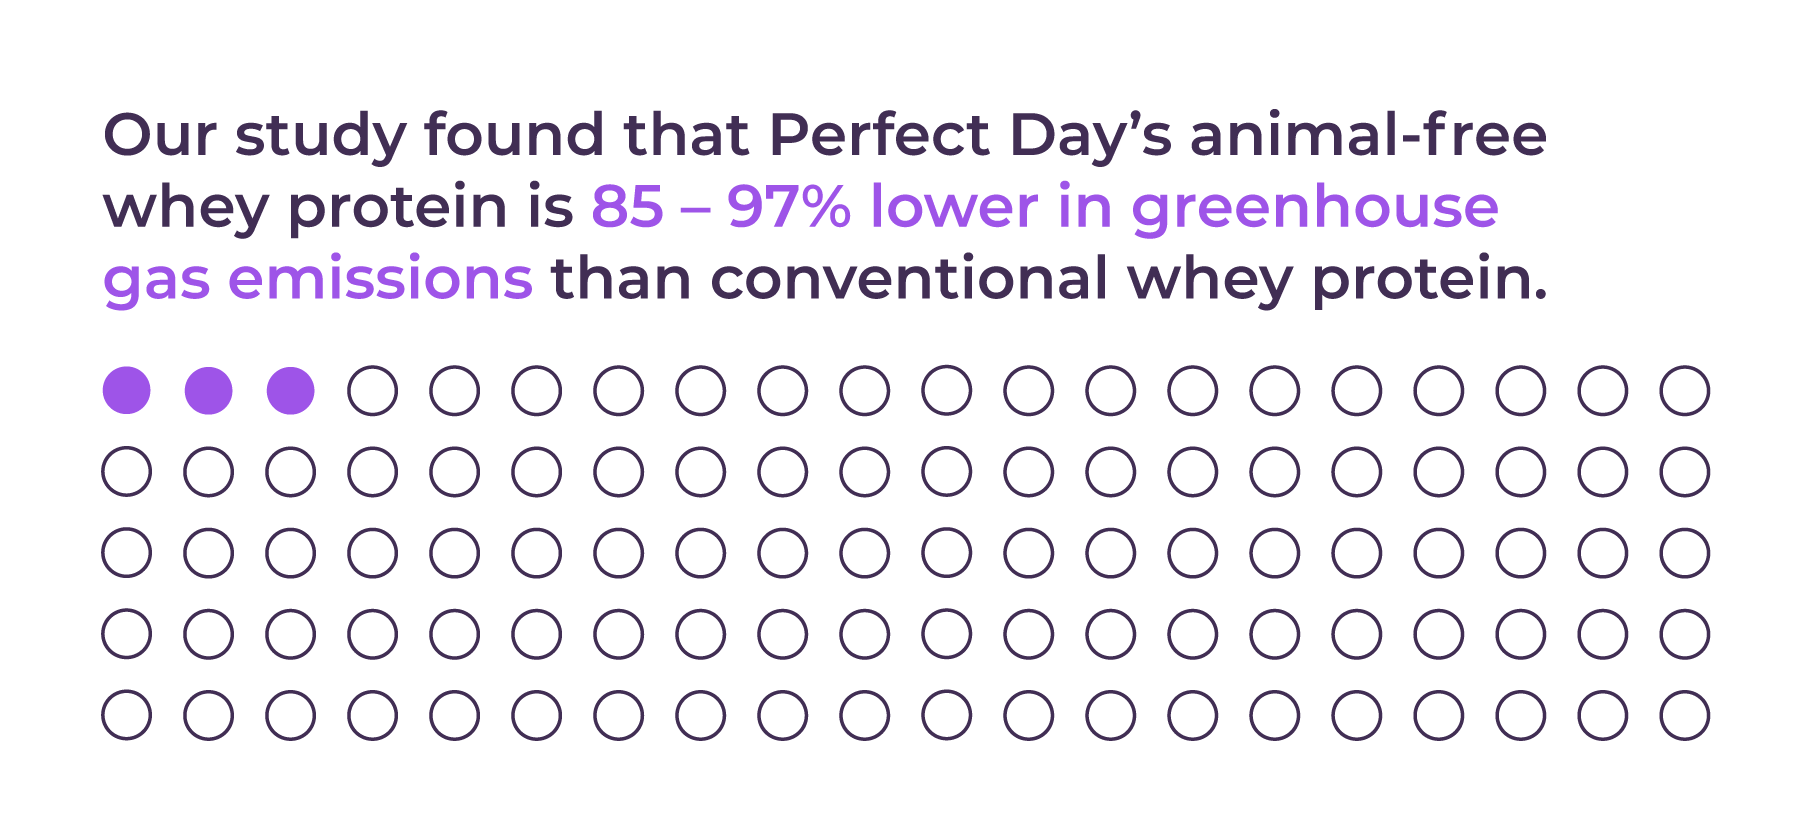 Perfect Day's animal-free whey protein is 85-97% lower in greenhouse gas emissions than conventional whey protein